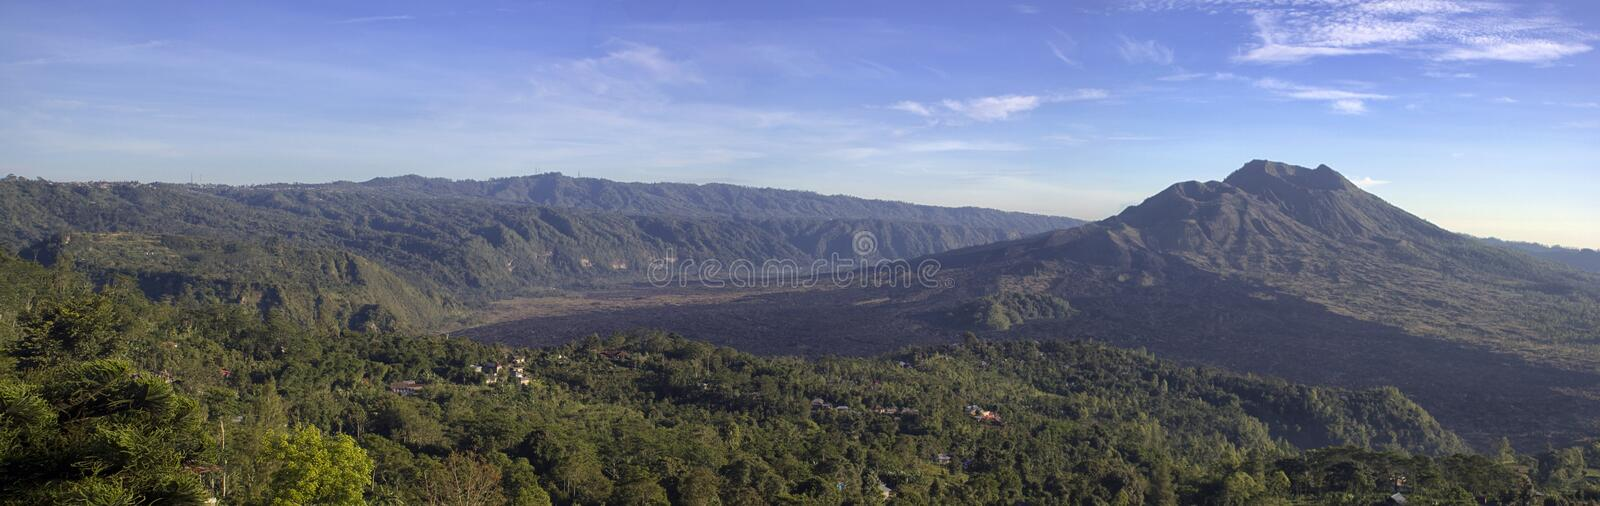 Download Panoramic View Of Balinese Mountain Stock Image - Image of background, balinese: 117027881